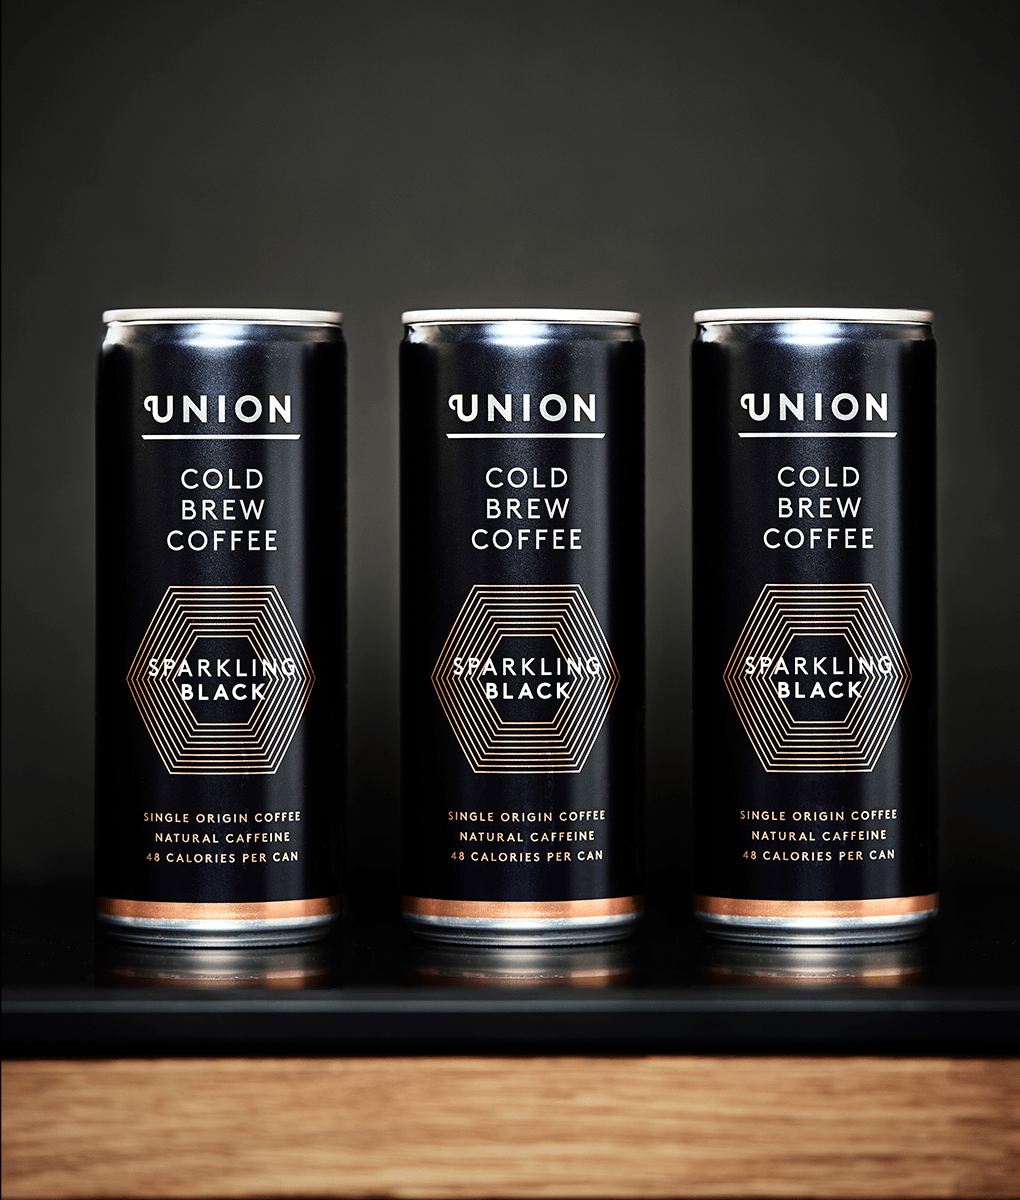 Cold Brew Cans, Sparkling Black, Union Coffee